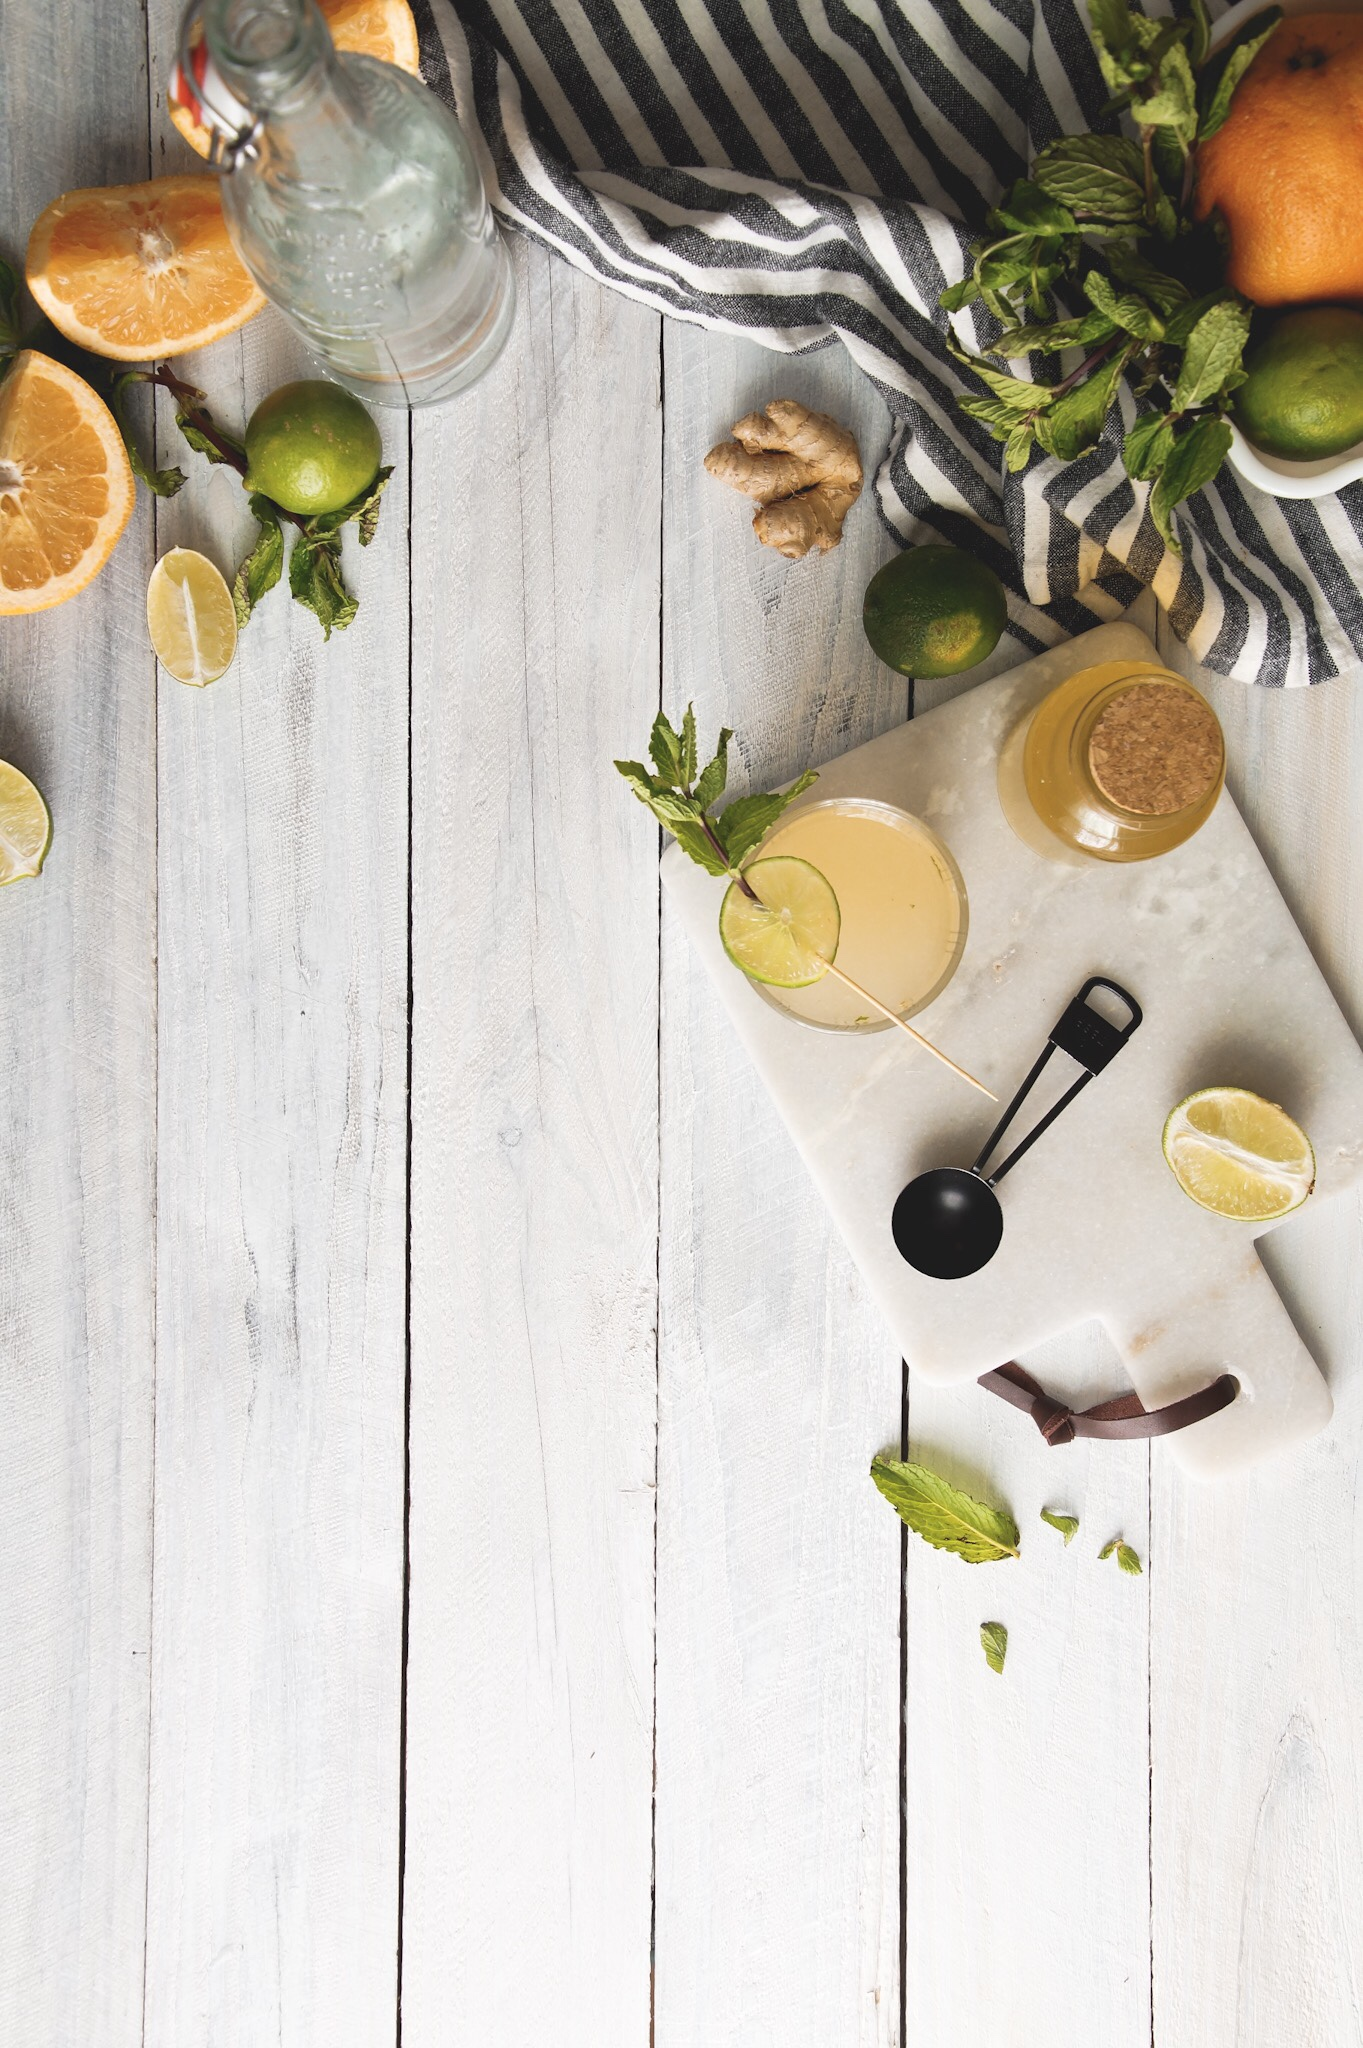 Refreshing with a bright citrus taste and a slight earthy-spiciness from fresh mint and ginger syrup make this  paloma cocktail perfect for winter sipping.- Winter cocktails  by amessybunkitchen